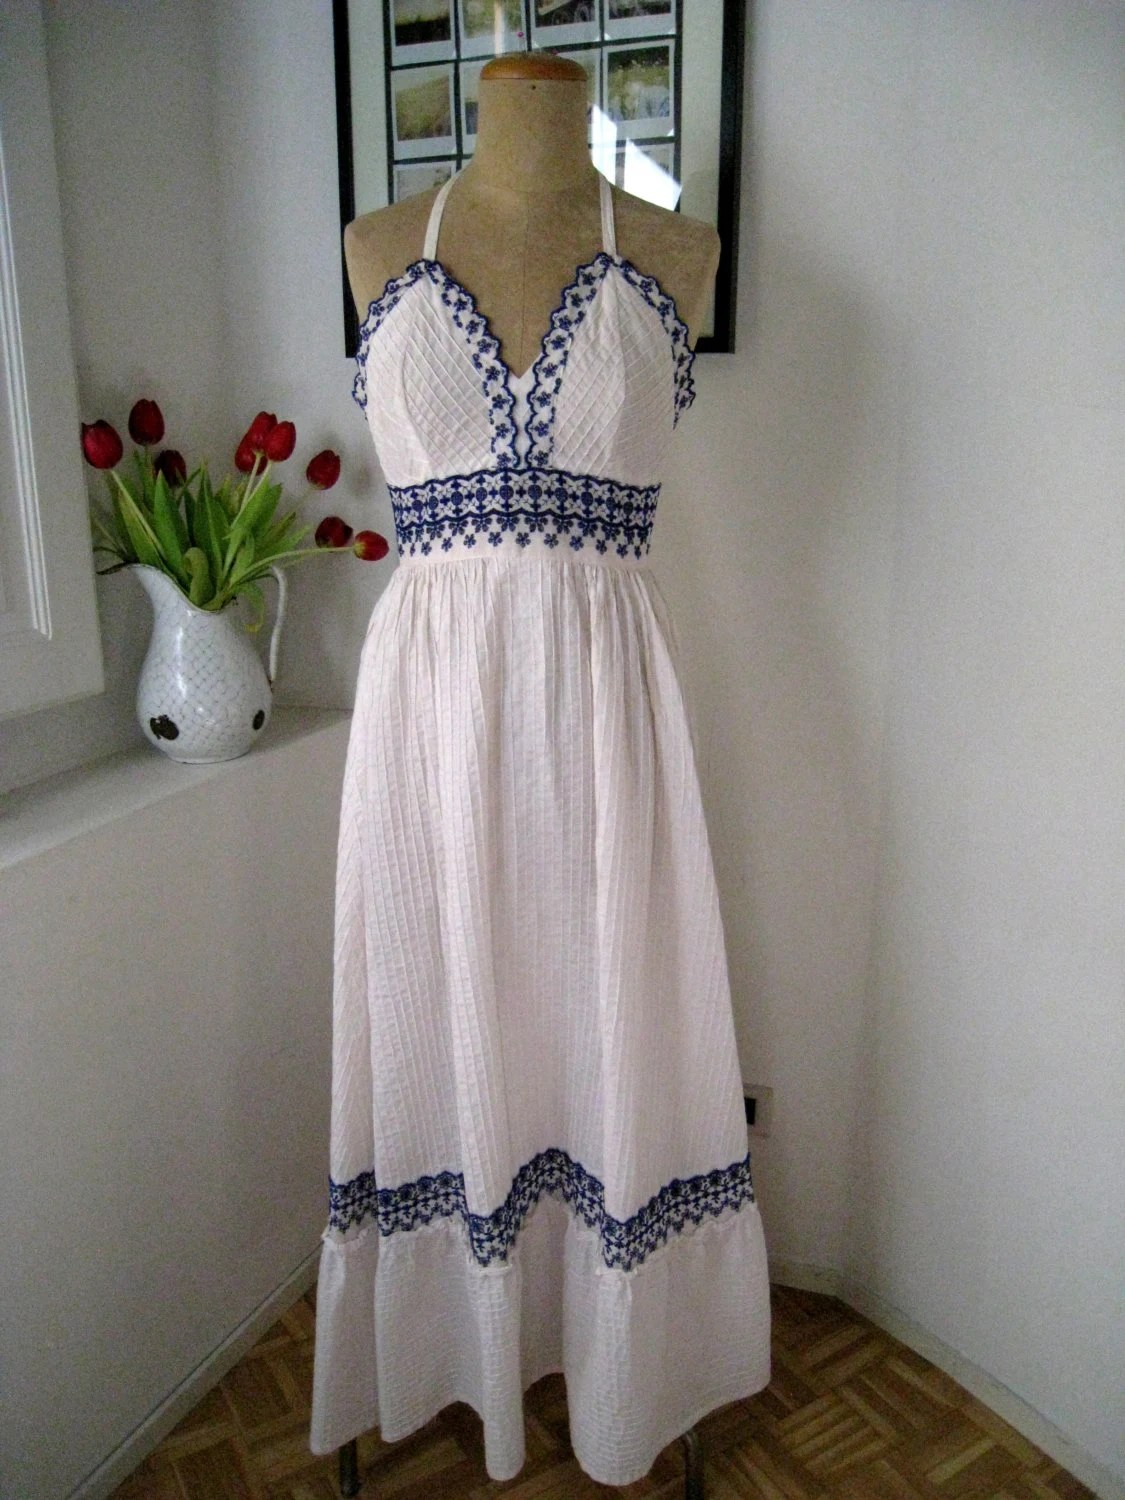 MEXICAN EMBROIDERED Halter Dress Georgia Charuhas White and